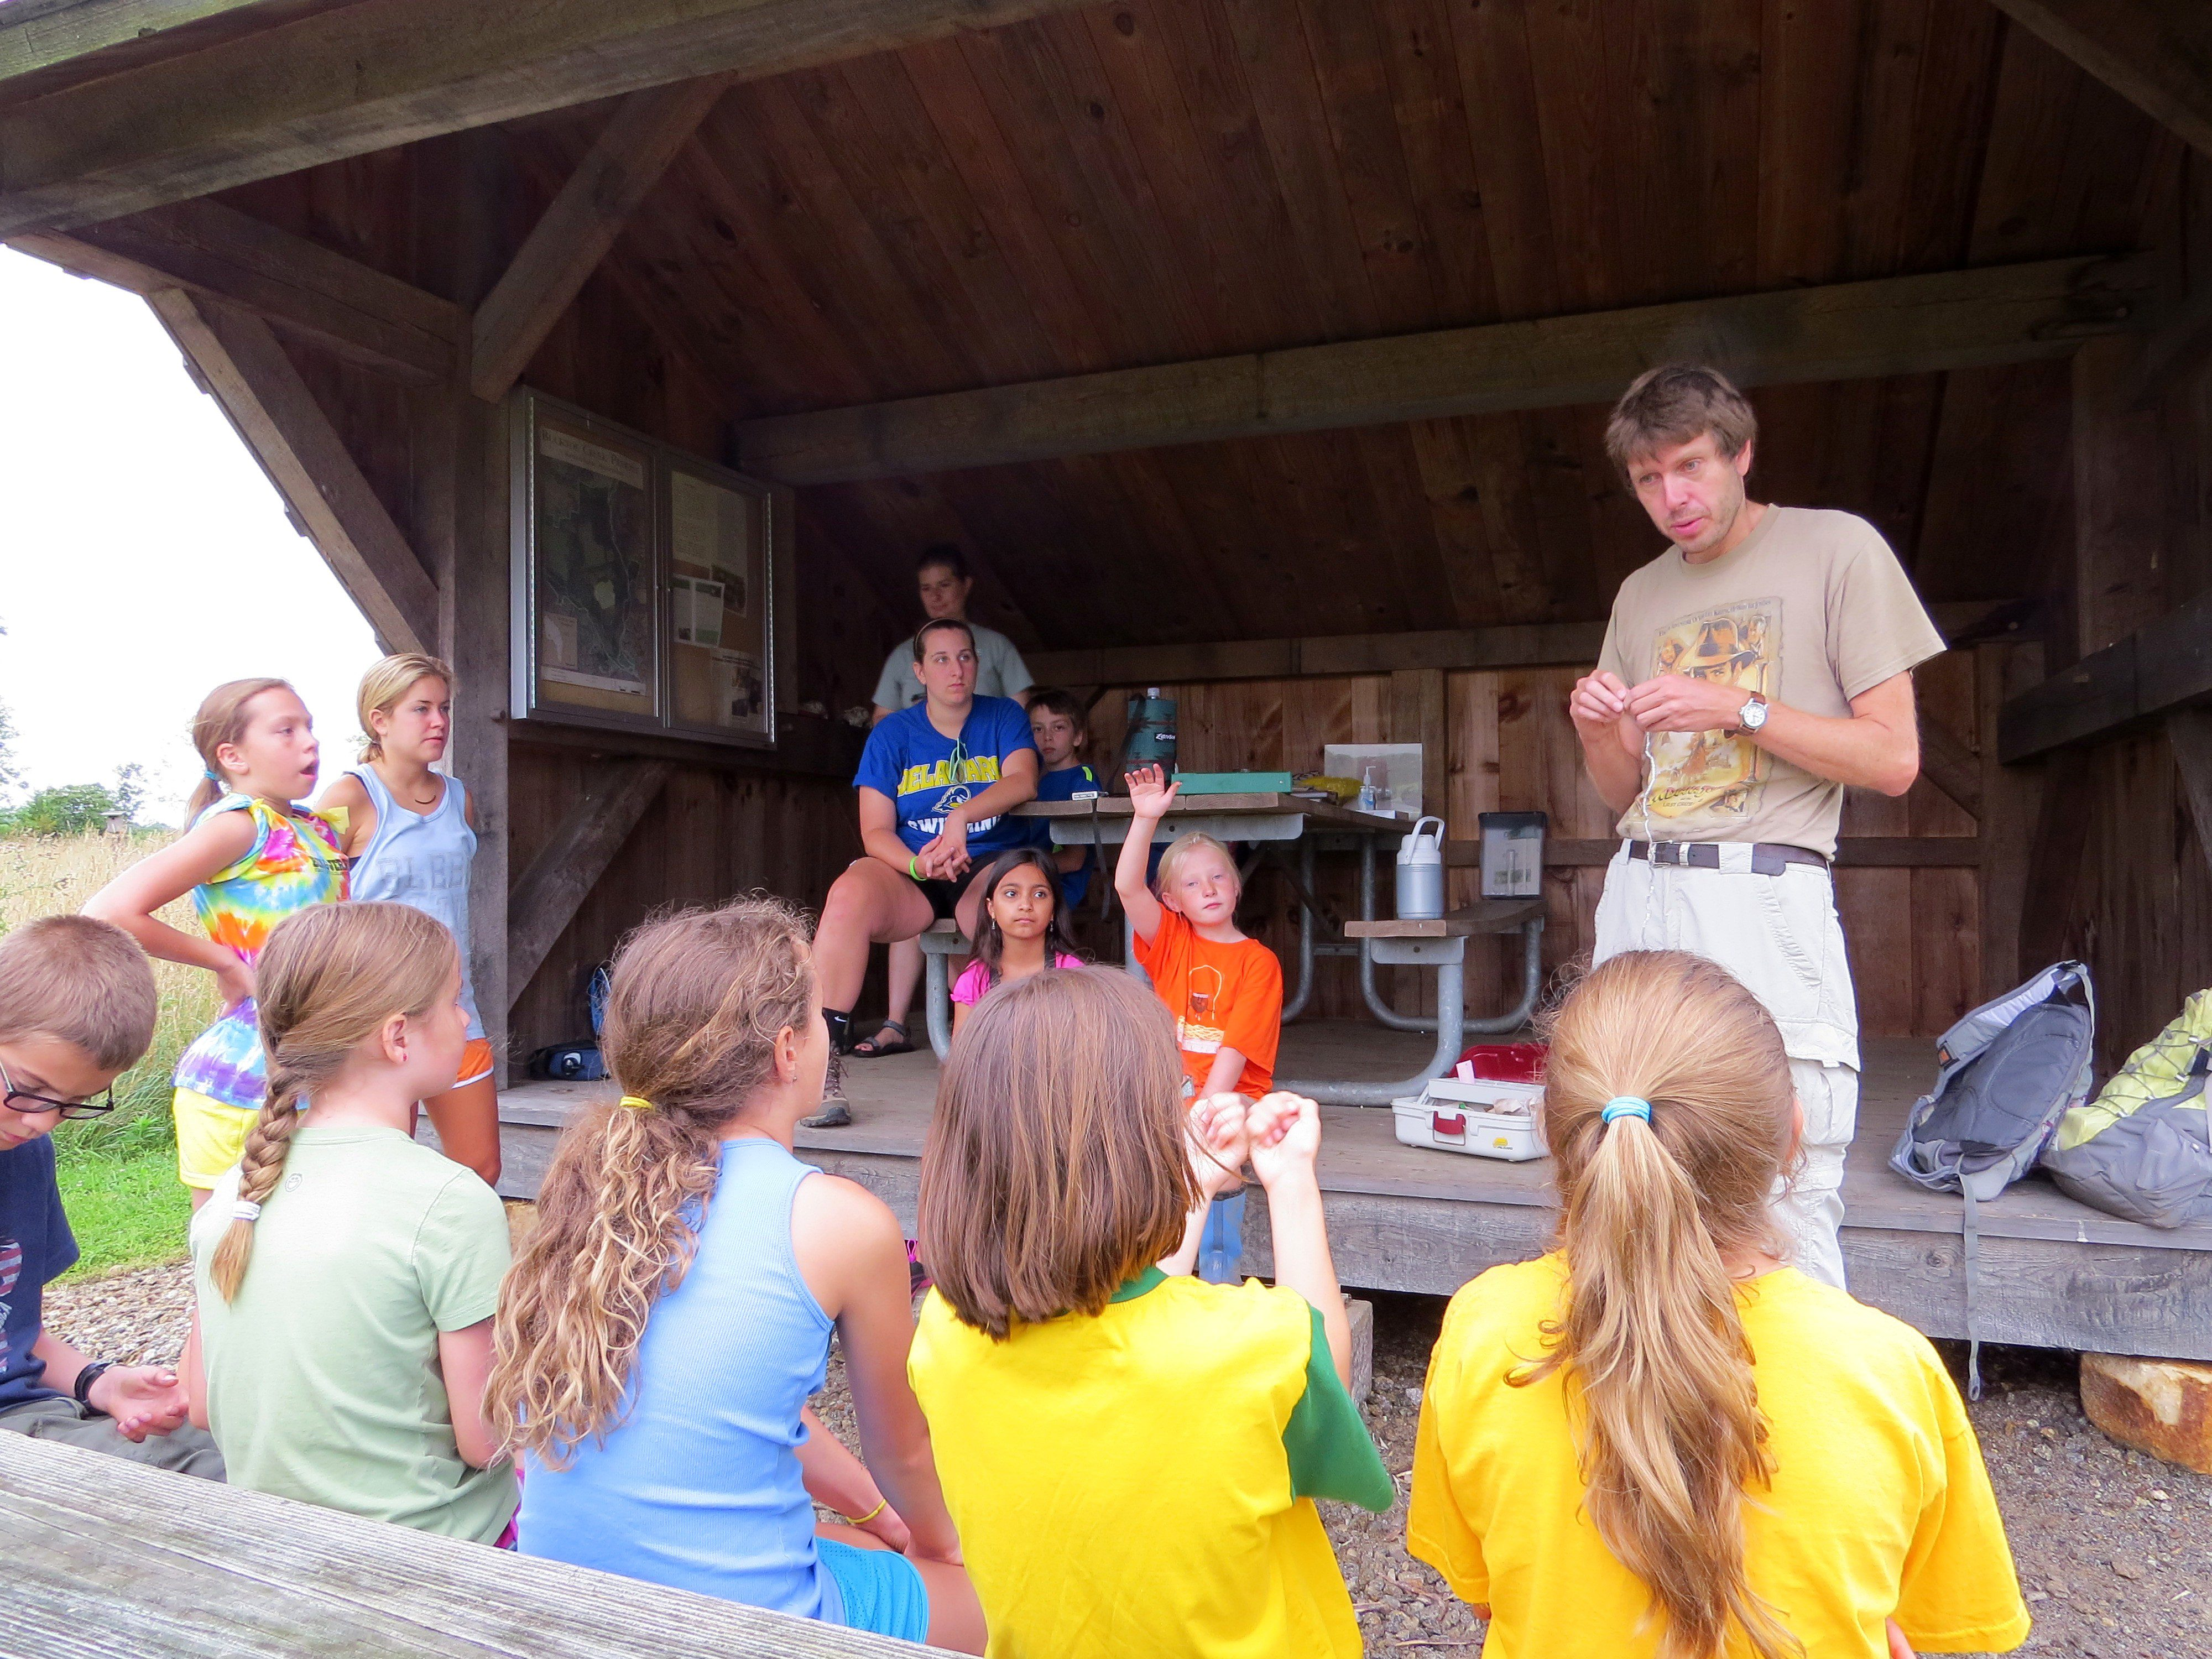 Ian is telling the group about his research banding Tree Swallows.